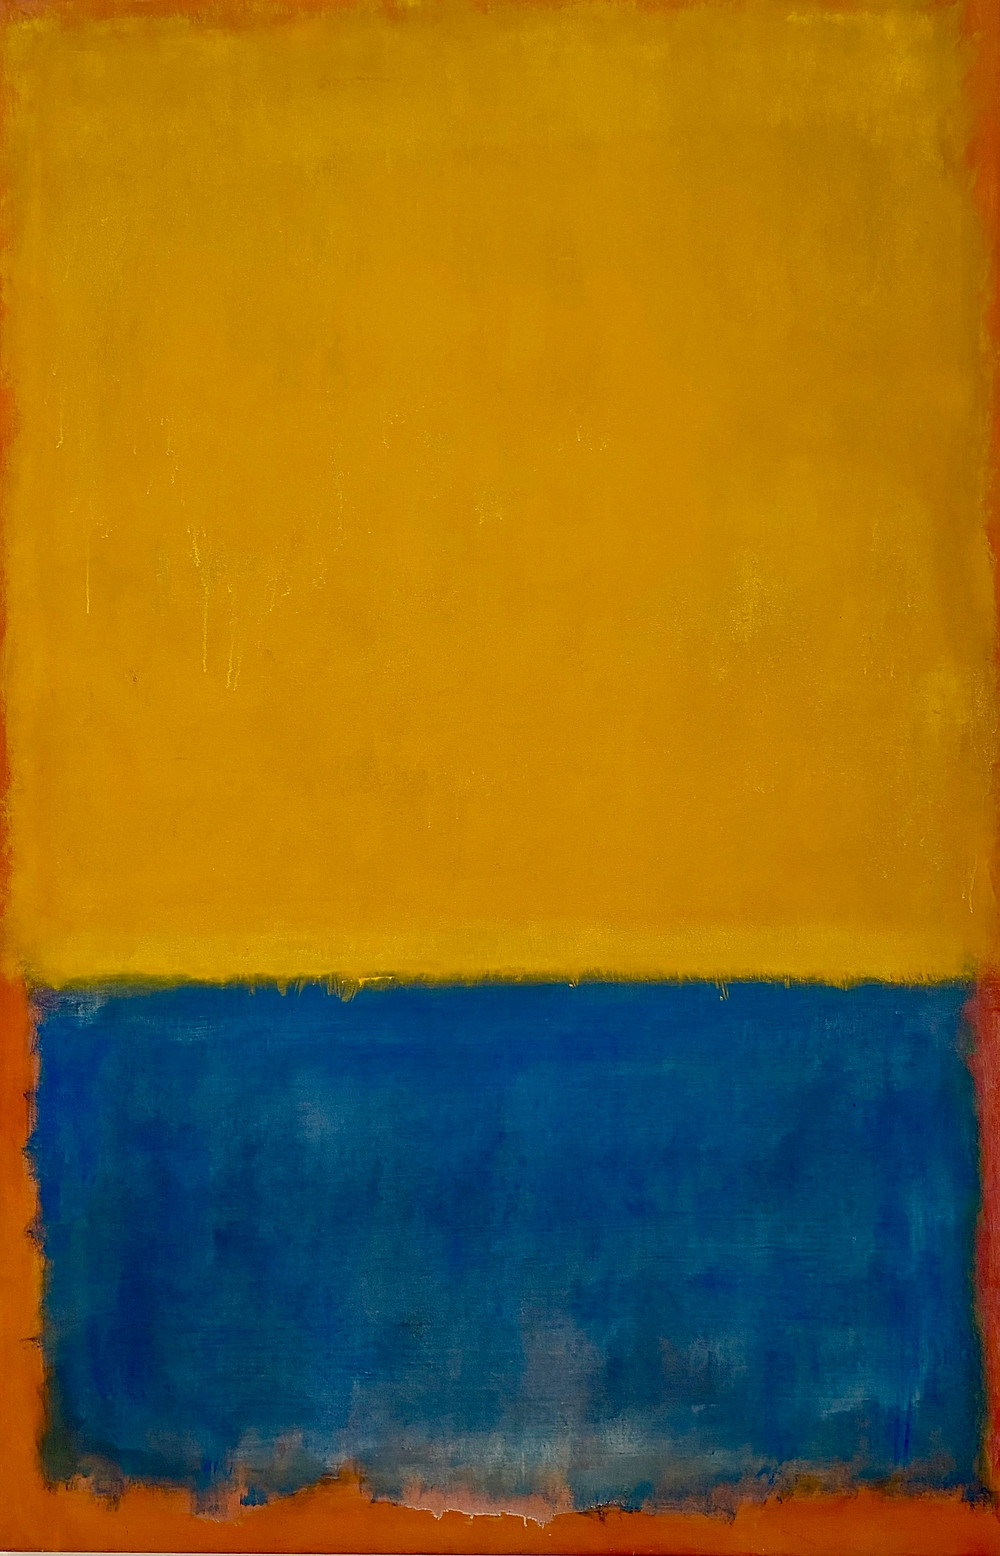 Mark Rothko, Yellow and Blue, 1955